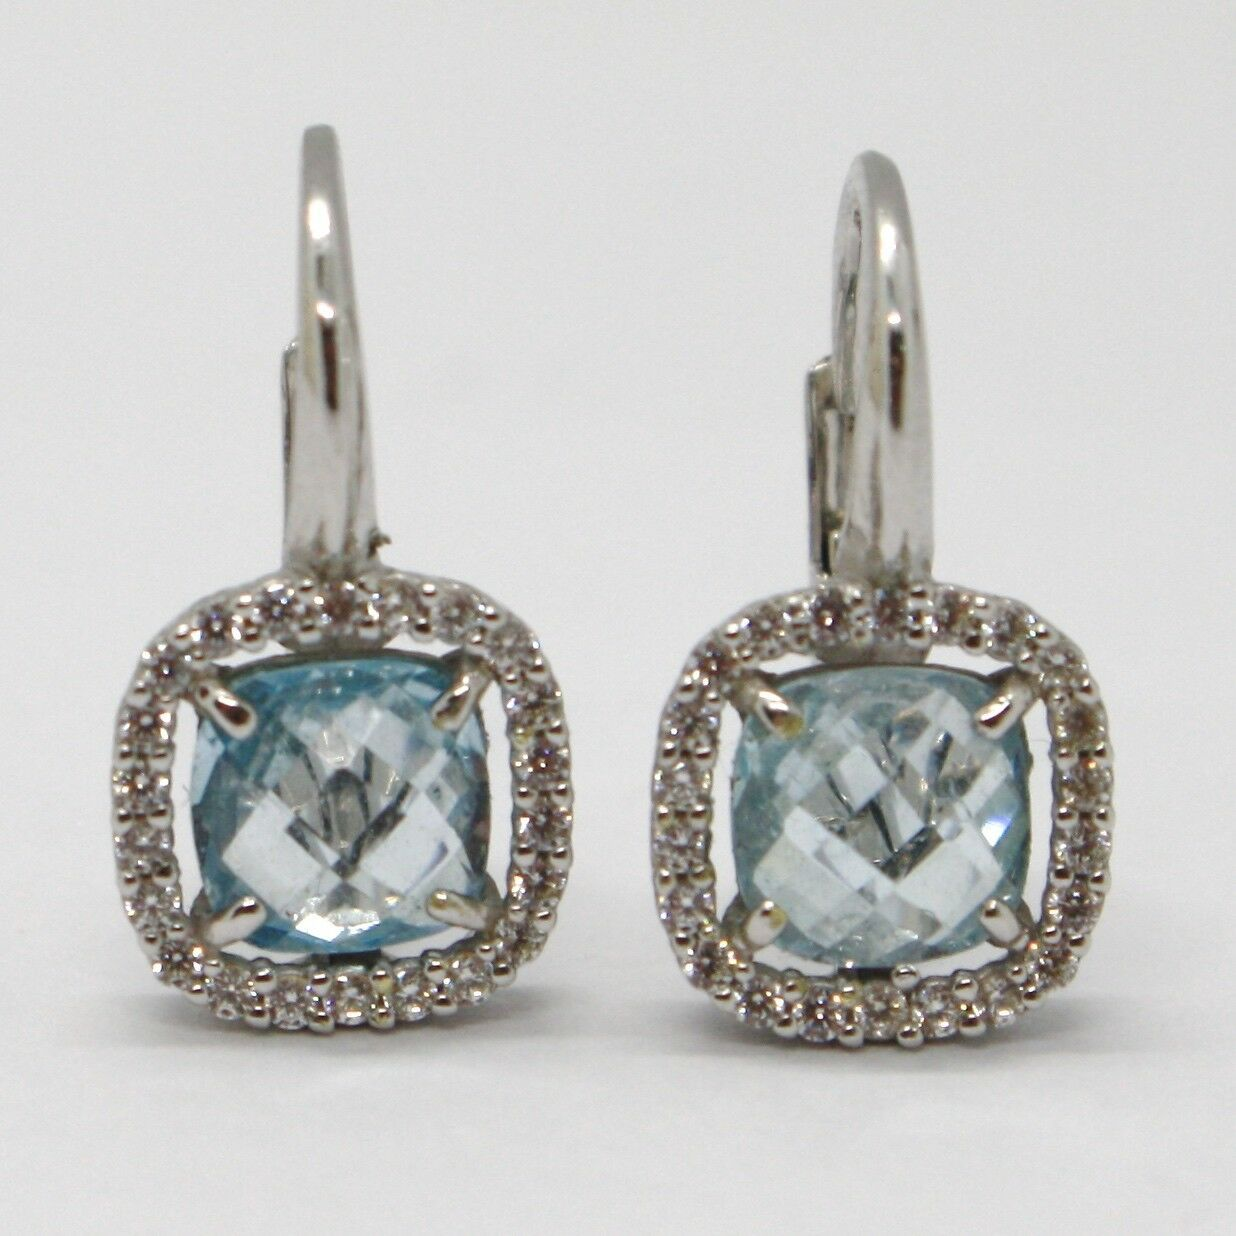 18K WHITE GOLD LEVERBACK EARRINGS CUSHION BLUE TOPAZ, ZIRCONIA FRAME, ITALY MADE